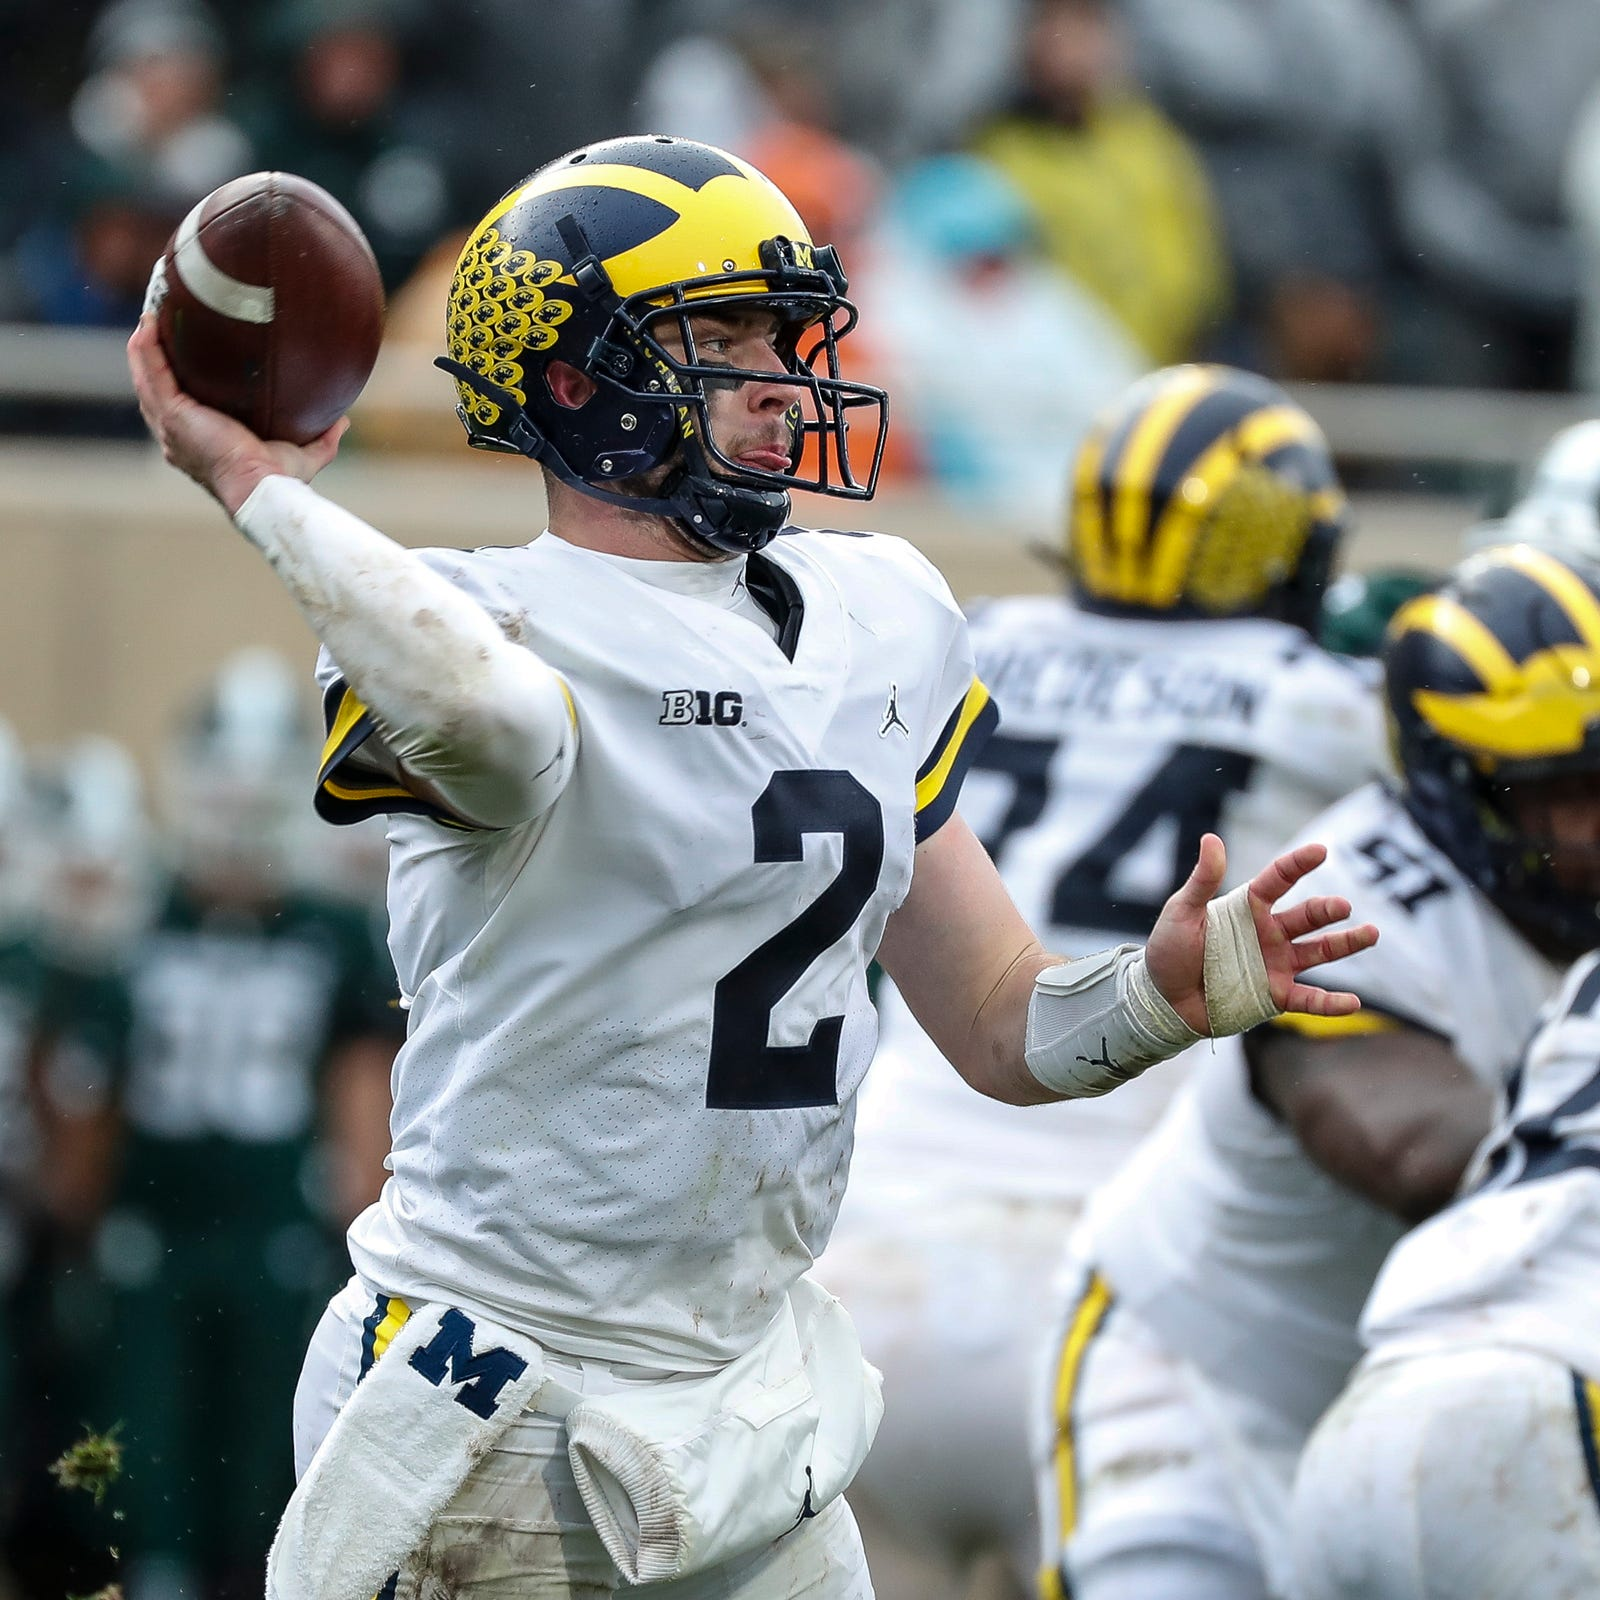 Michigan football's QB situation as strong as Jim Harbaugh has had